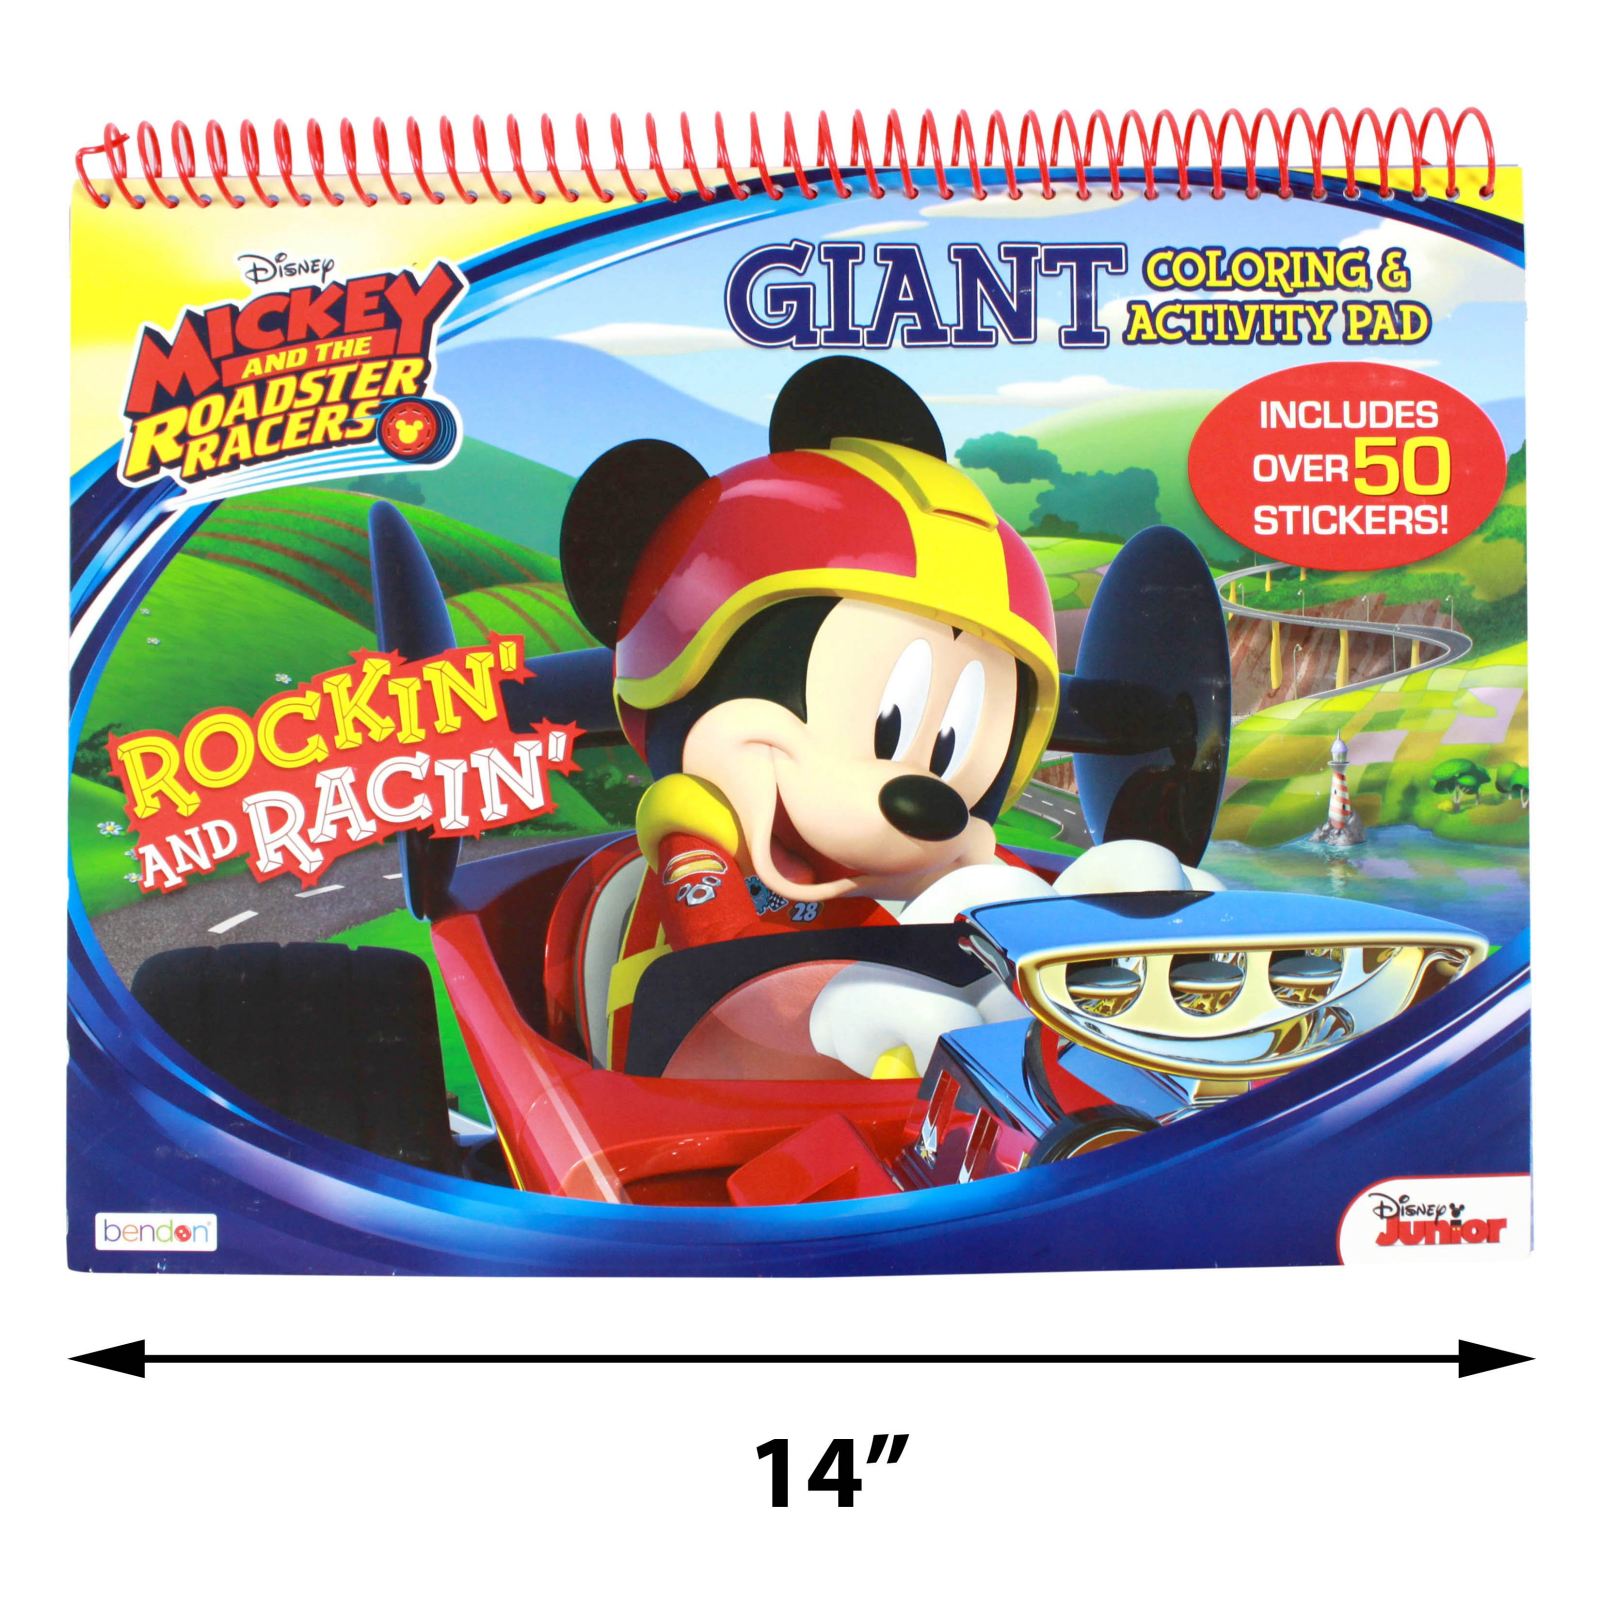 Disney Mickey Roadster Racers Giant Activity Coloring Book